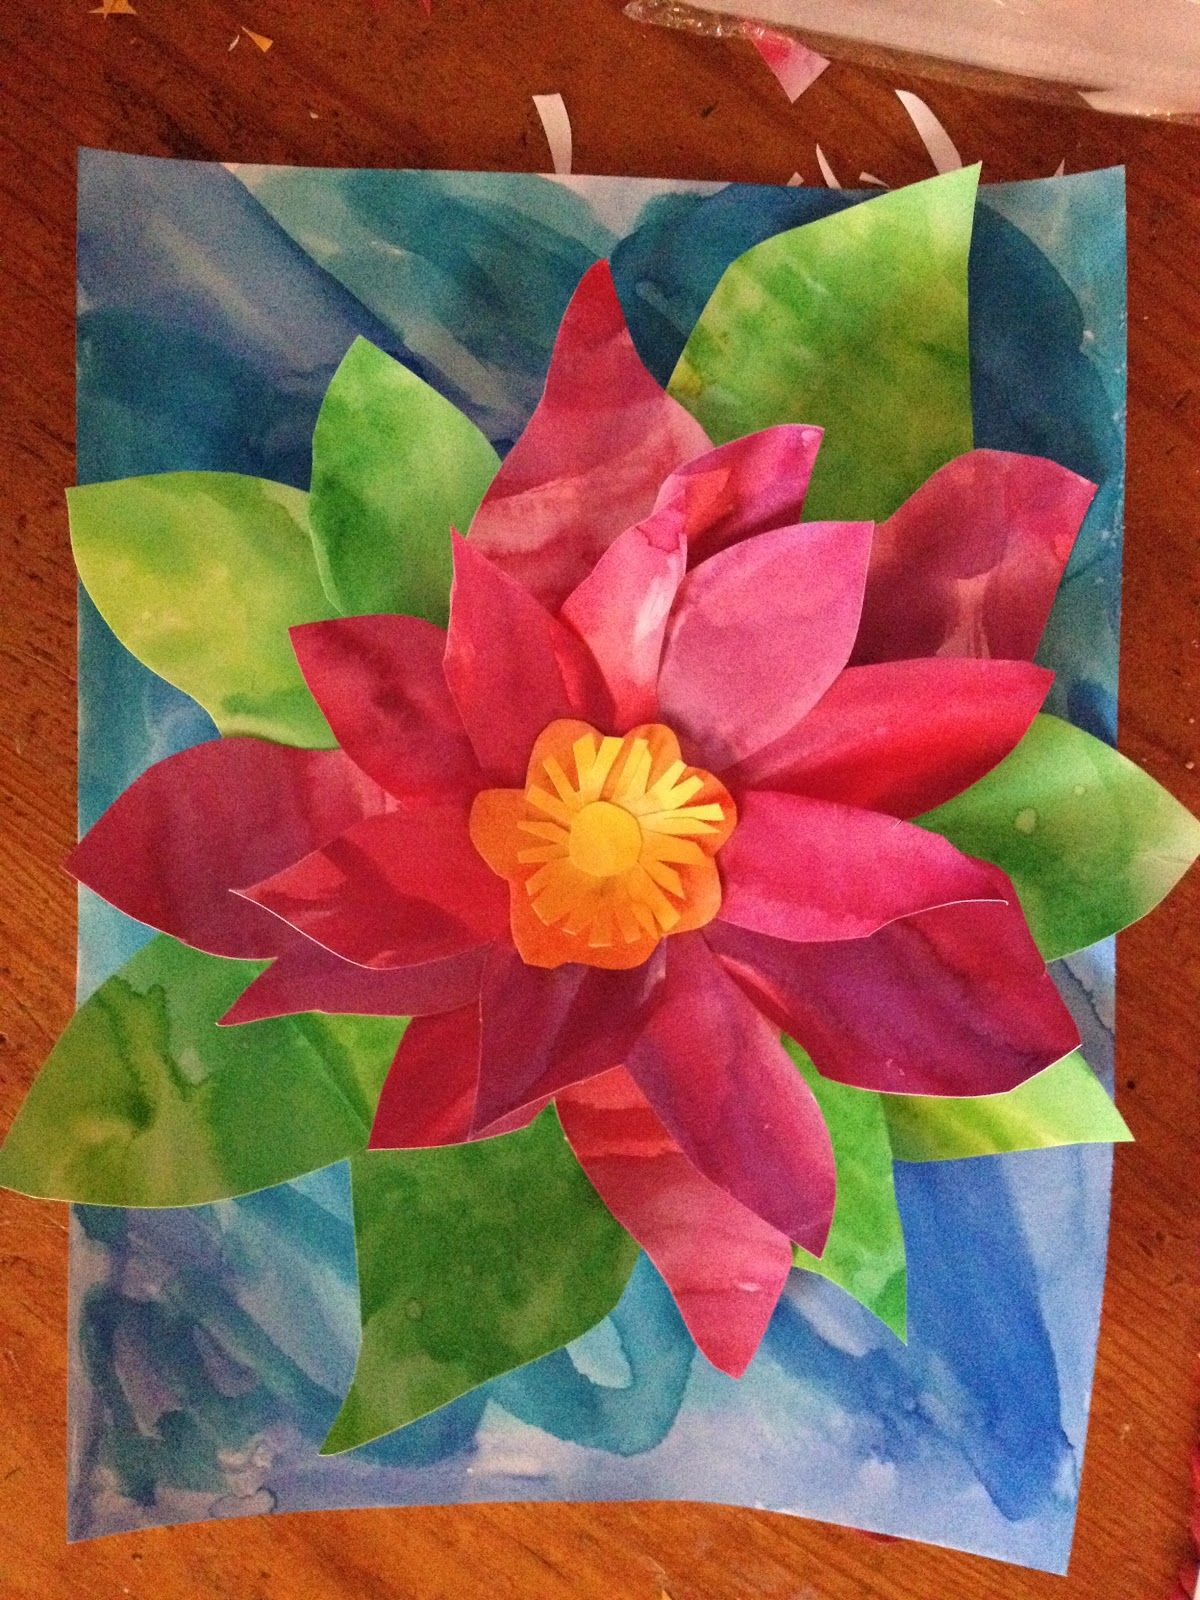 Watercolor art history - Monet Working 4 The Classroom An Art Project Because Spring Has Sprung This Is Such A Beautiful Project Perfect For Mother S Day Or For An Art History